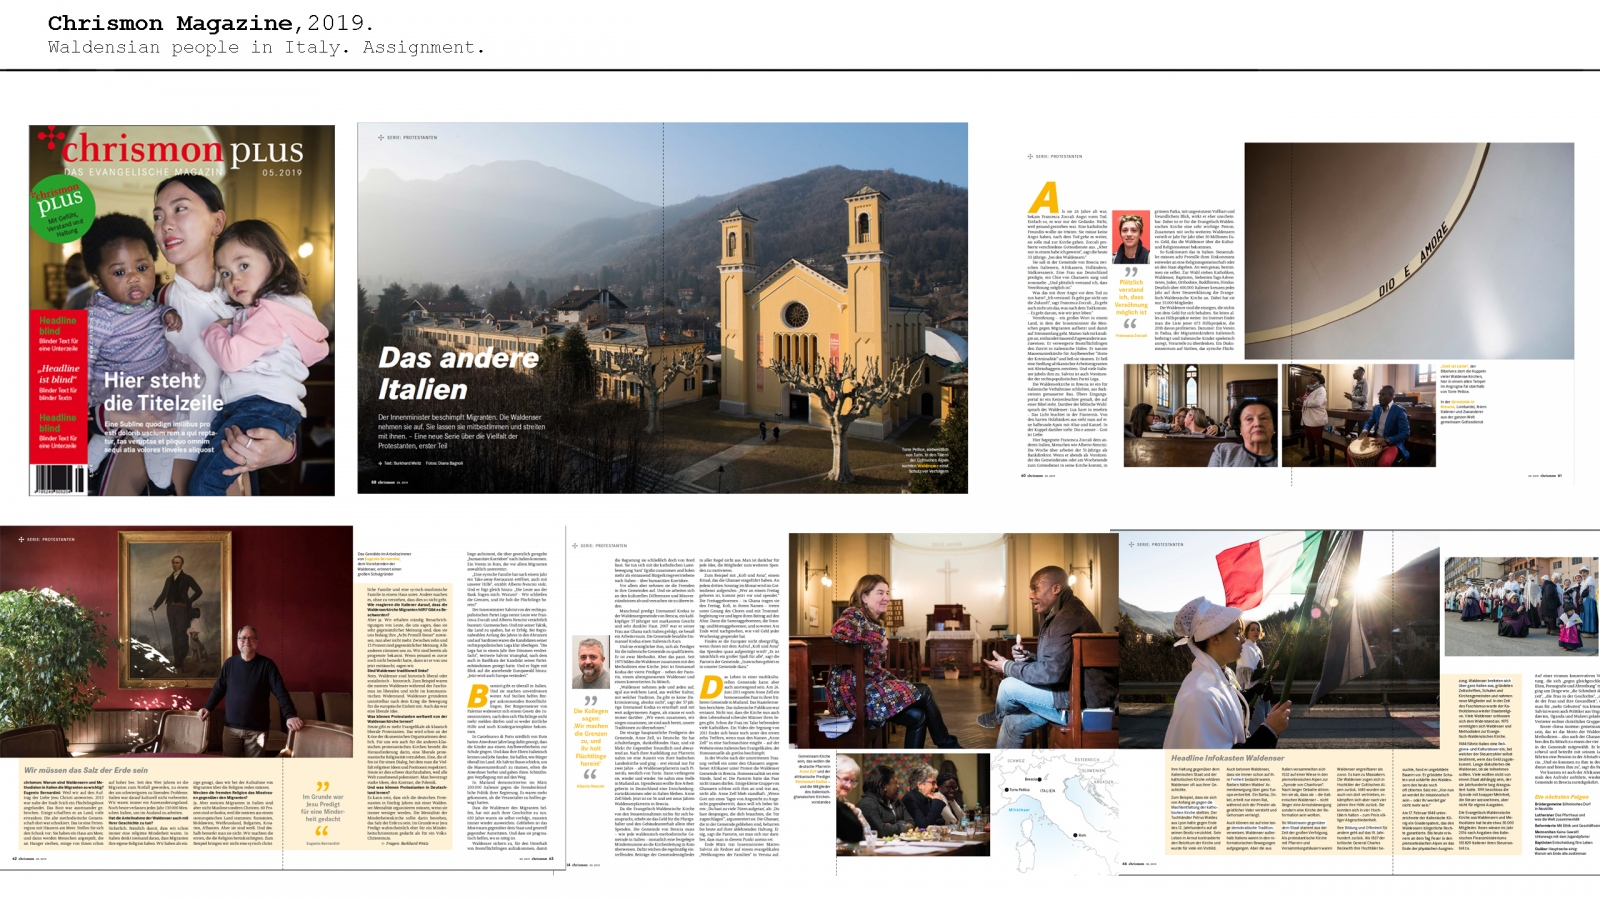 Waldensian story in north of Italy for Chrismon. February 2019